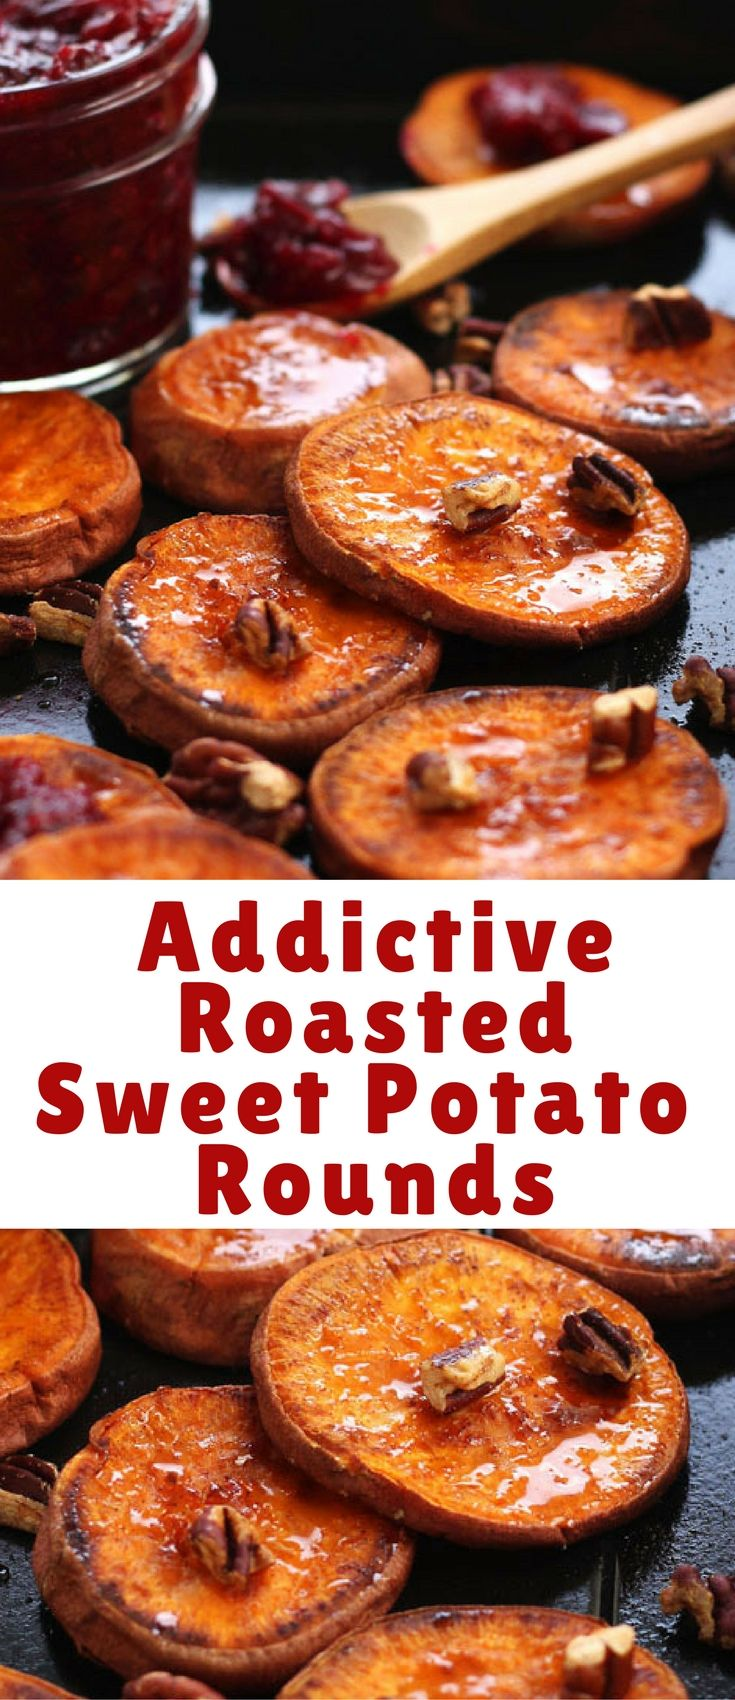 Roasted sweet potato rounds are an easy snack or holiday side dish for two. Sweet potato slices seasoned with coconut oil, salt and cinnamon then roasted to caramelized perfection. Better make two batches, you won't want to share!